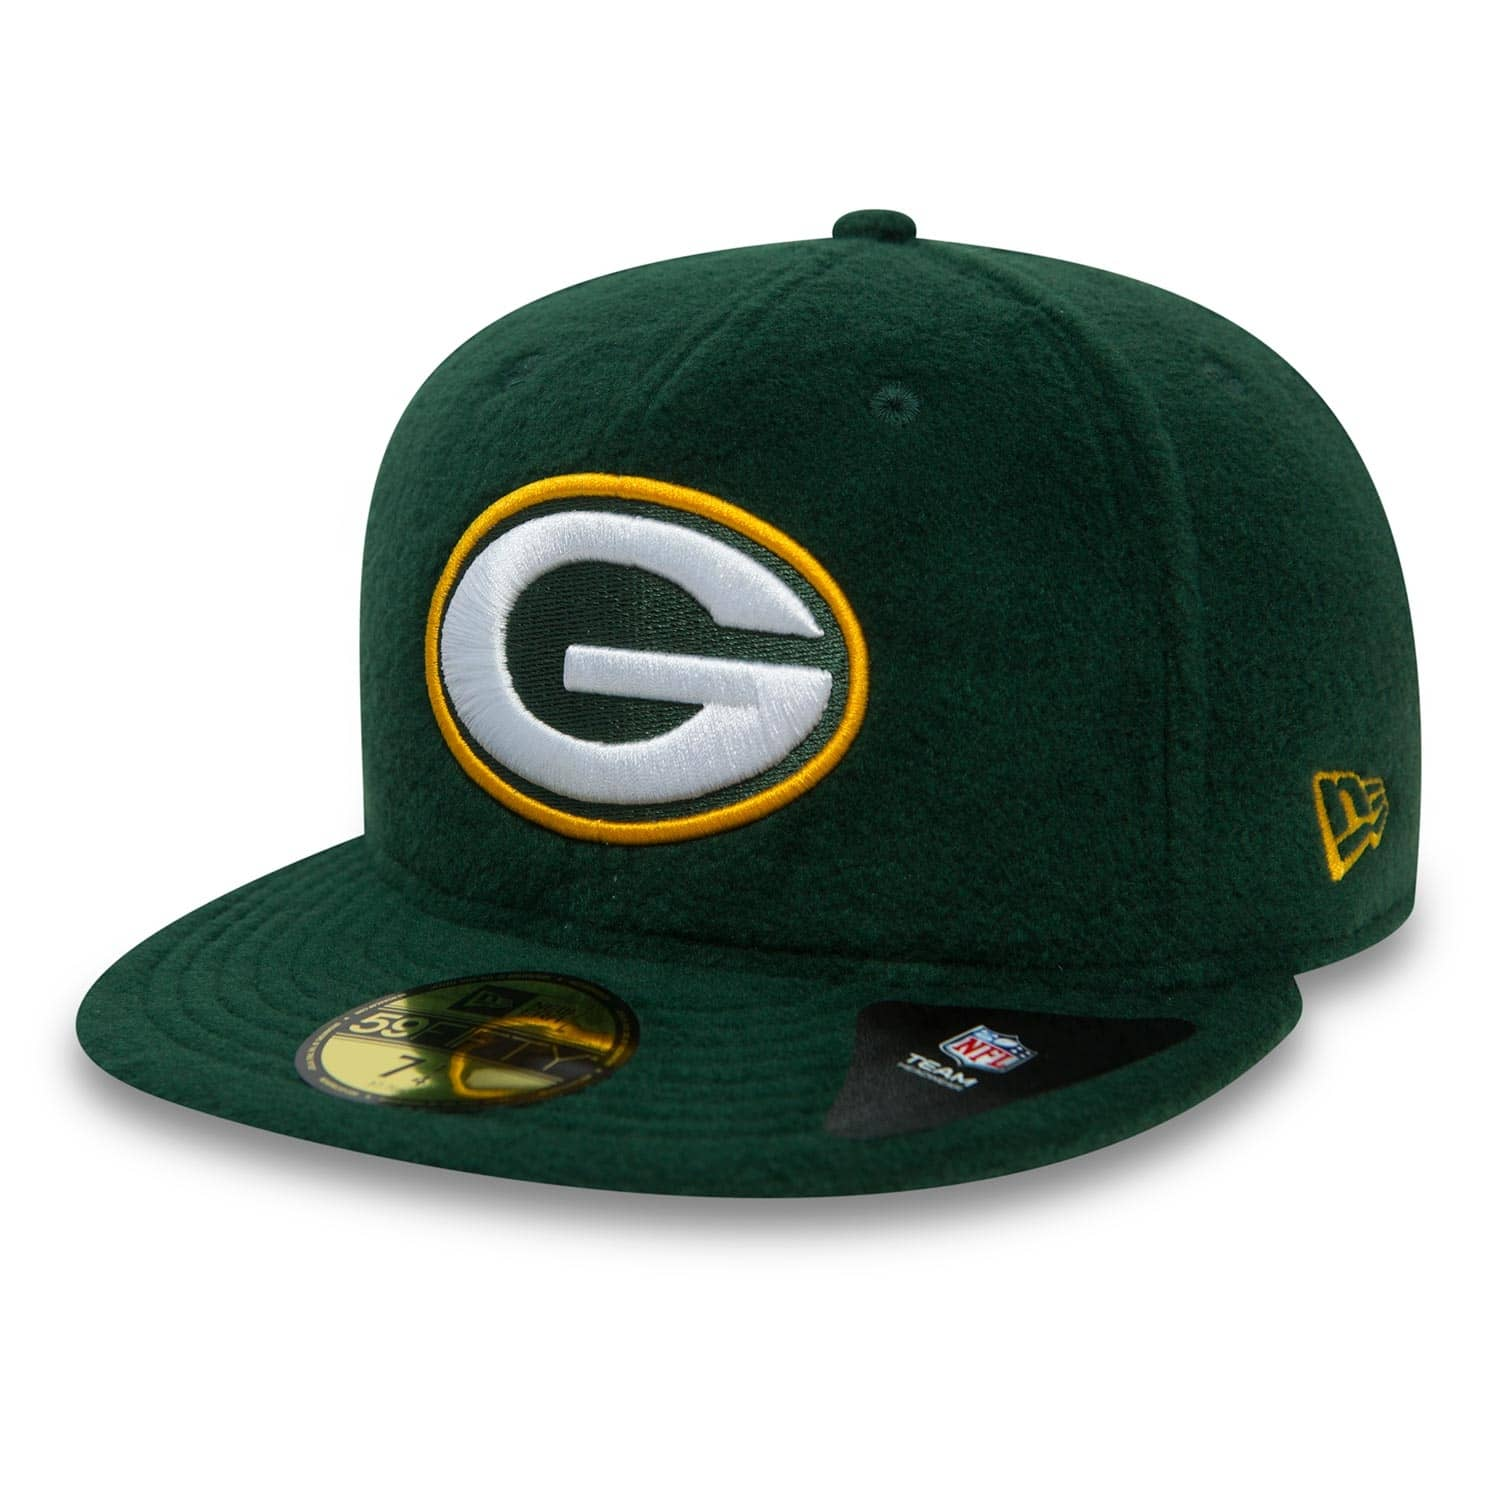 New Era Green Bay Packers Winter Fleece 59FIFTY Fitted NFL Cap ... 8190bf2ae